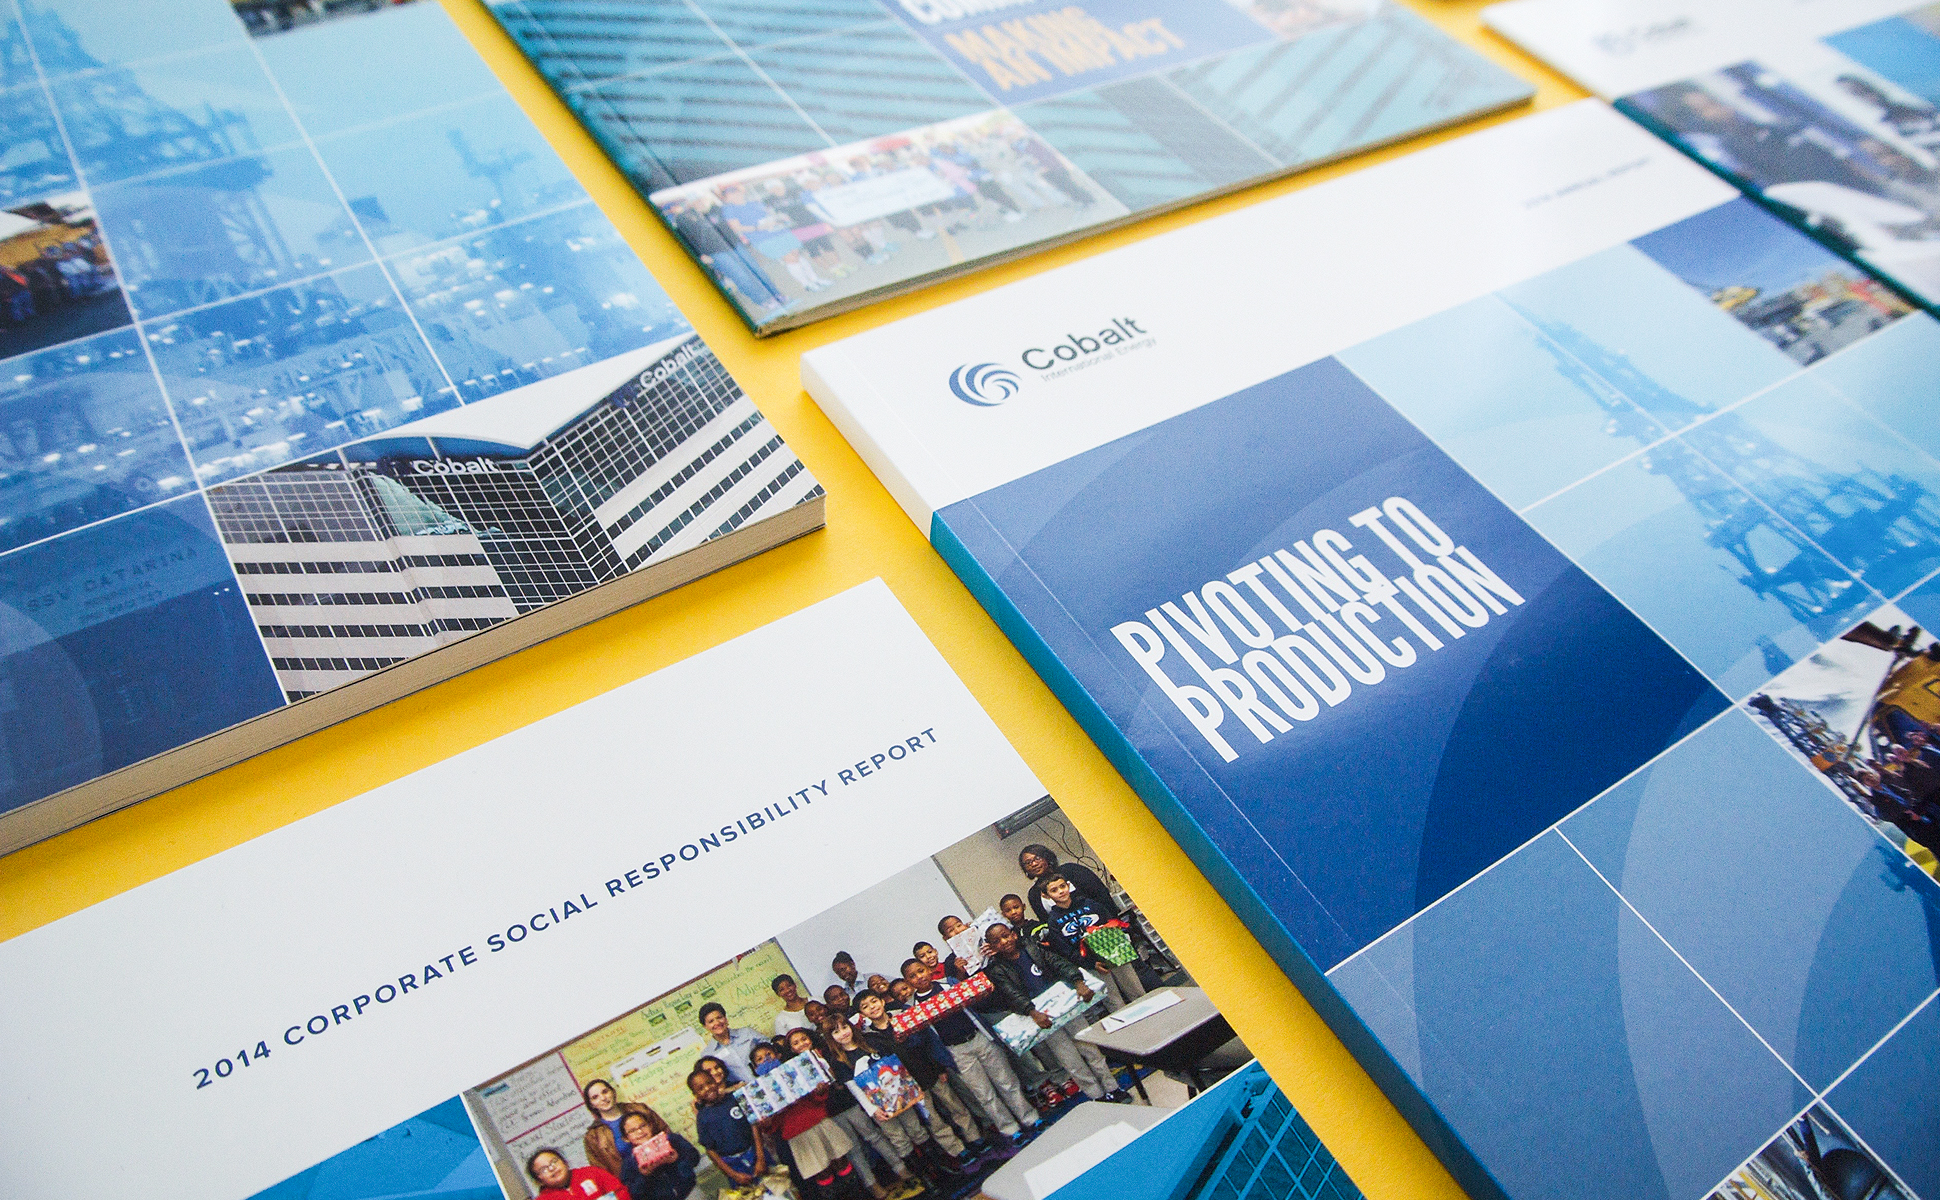 Cobalt International Energy 2014 Annual Report & Corporate Social Responsibility Report